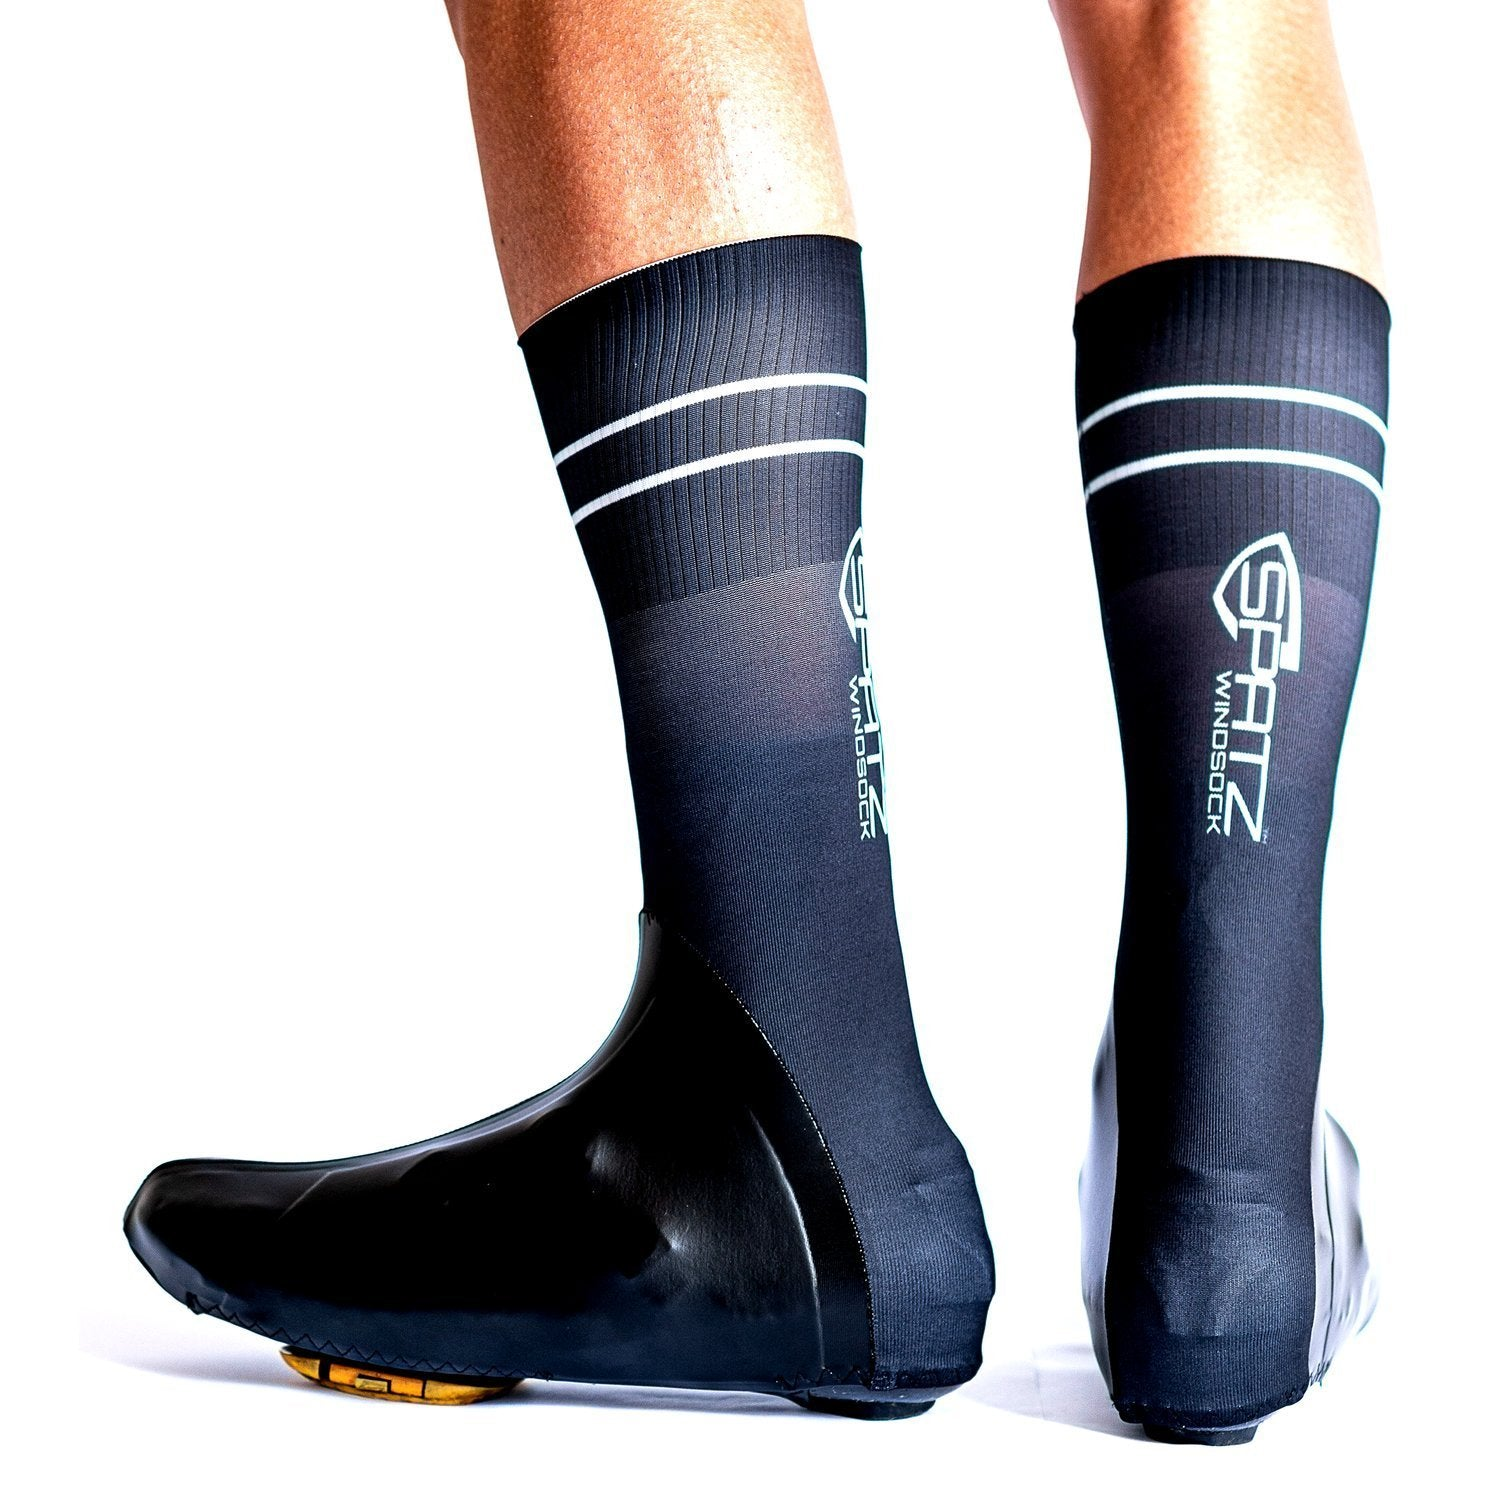 Spatzwear Cycle Clothing > Socks SPATZ 'Windsock' UCI Legal Aero Oversocks